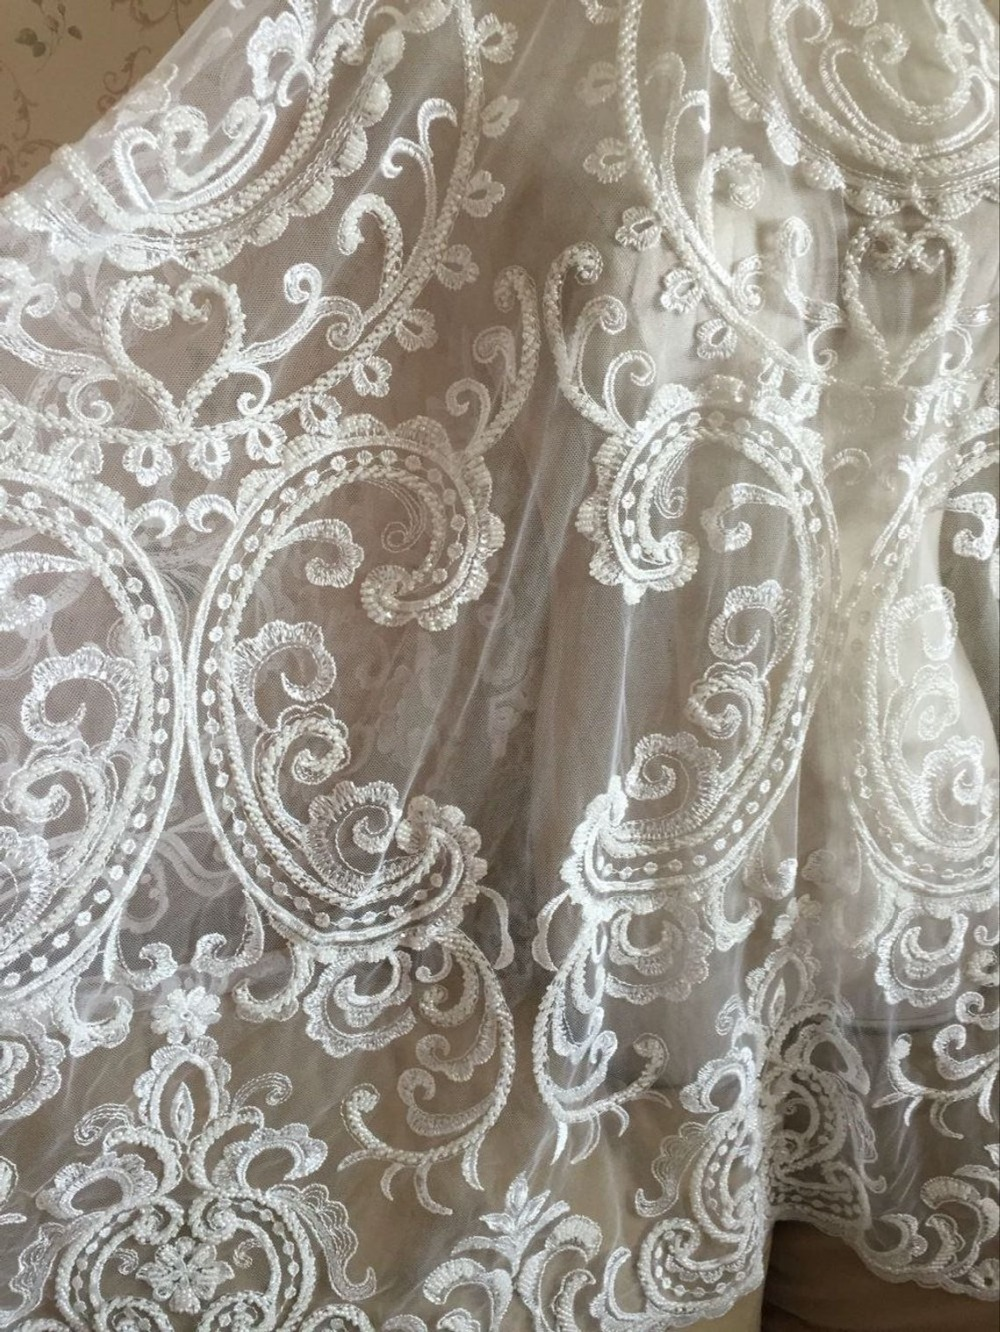 Fabulous Beaded Lace Fabric Aulic Retro Floral Embroidered Fabric With Beads Sequined Alencon Lace Fabric 53